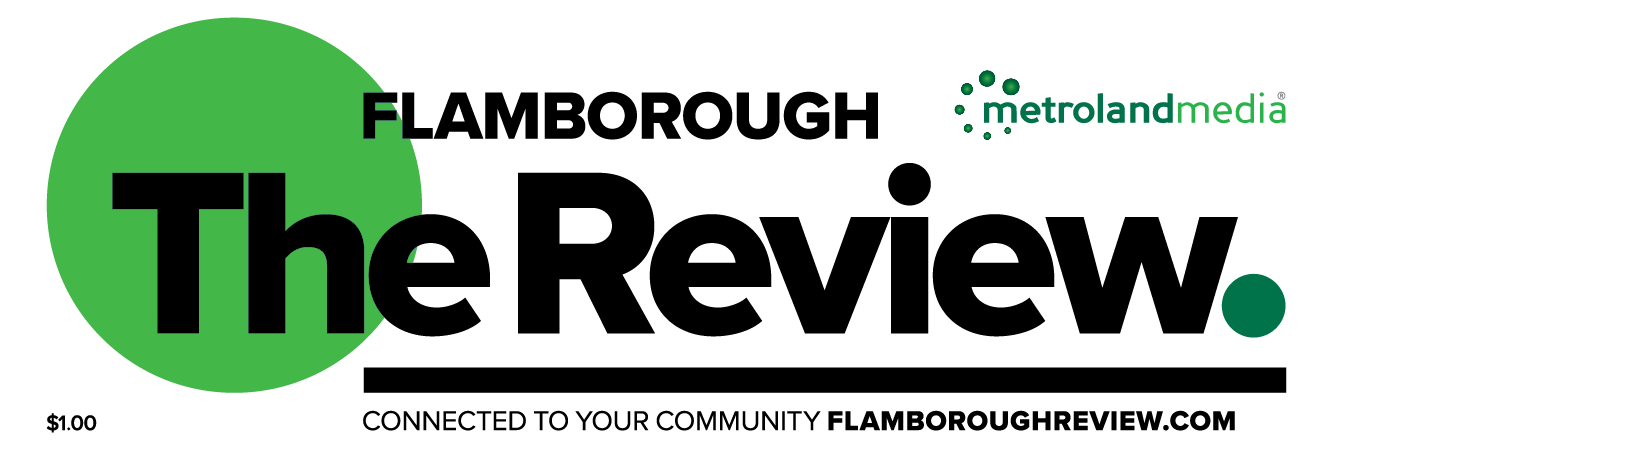 Flamborough Review